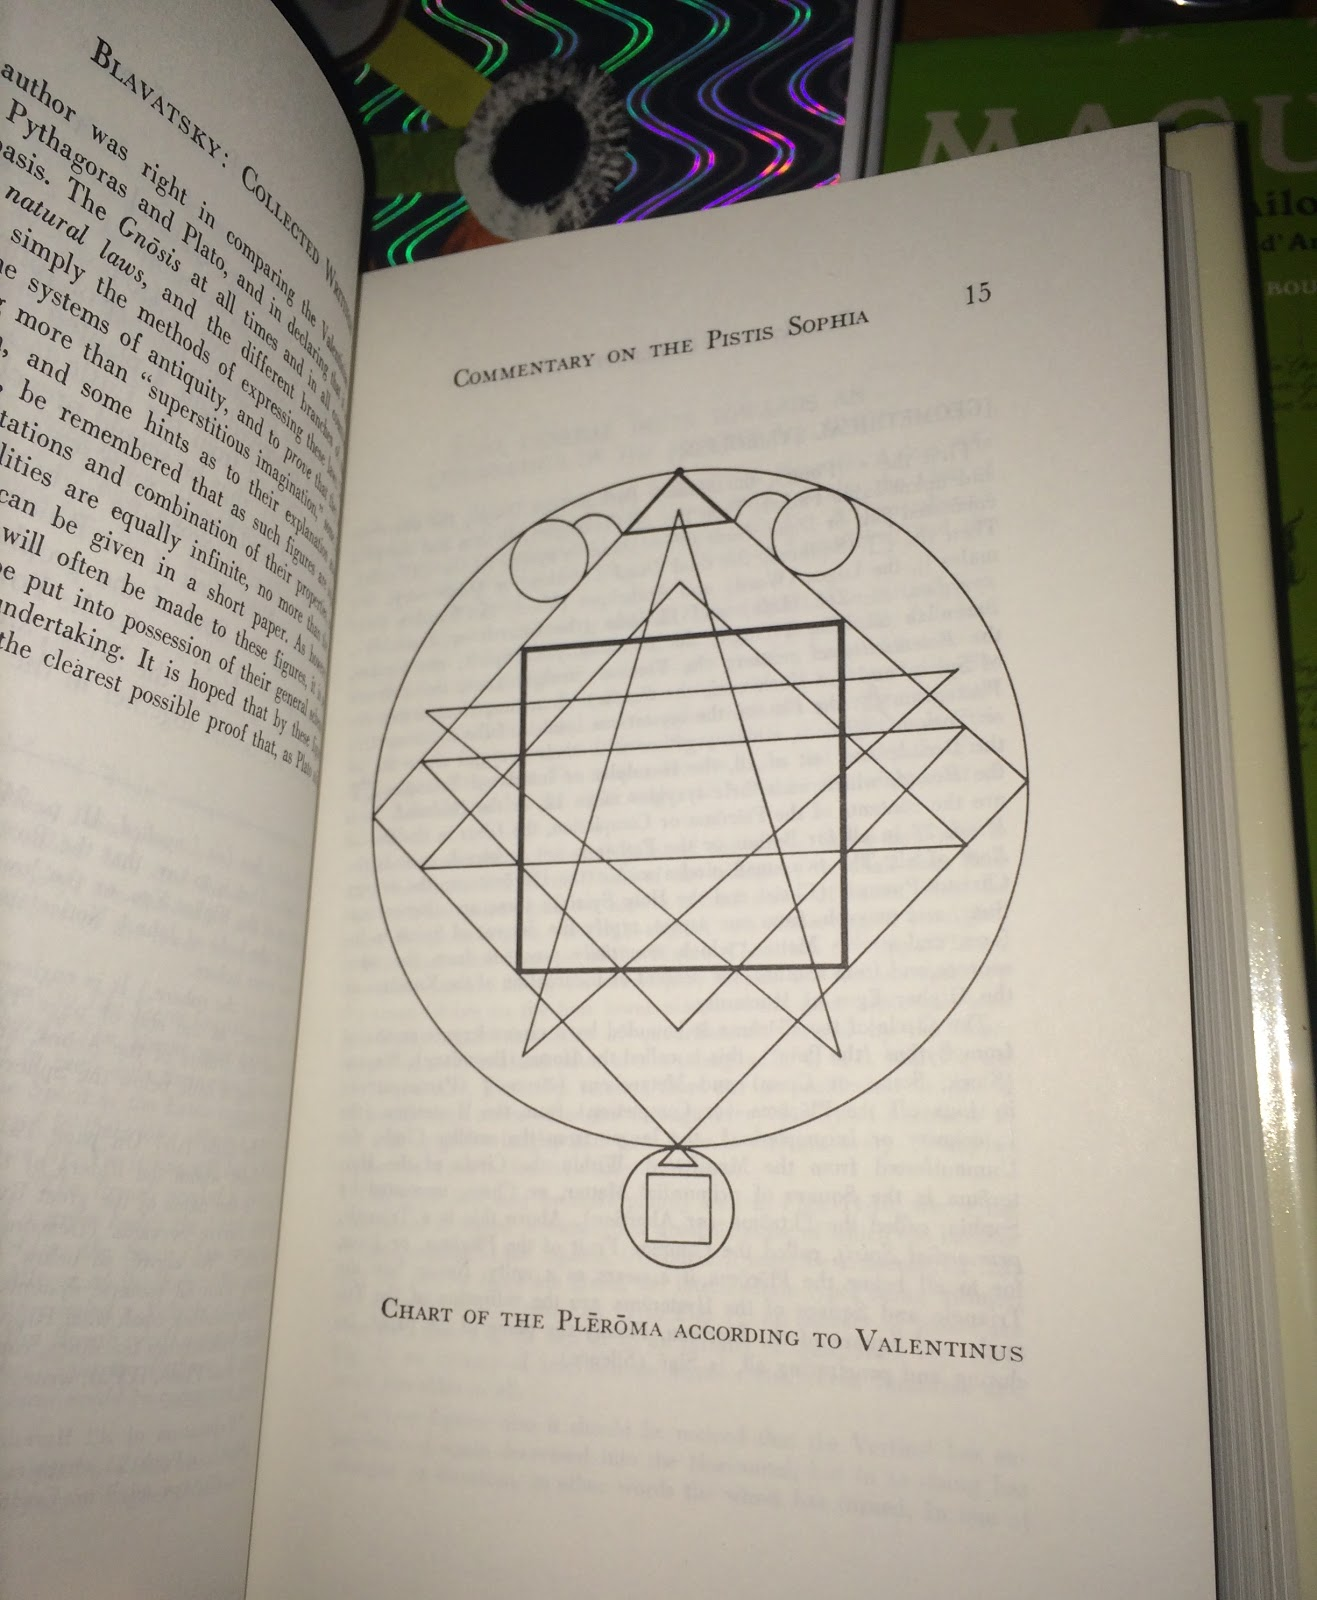 Its all in the egg revivals of the gnosis the thirteenth aeon mentioned in pistis sophia is also of relevance considering the 13 fold aspect of the zodiac clock triad quaternary 3x4 schemata pooptronica Choice Image